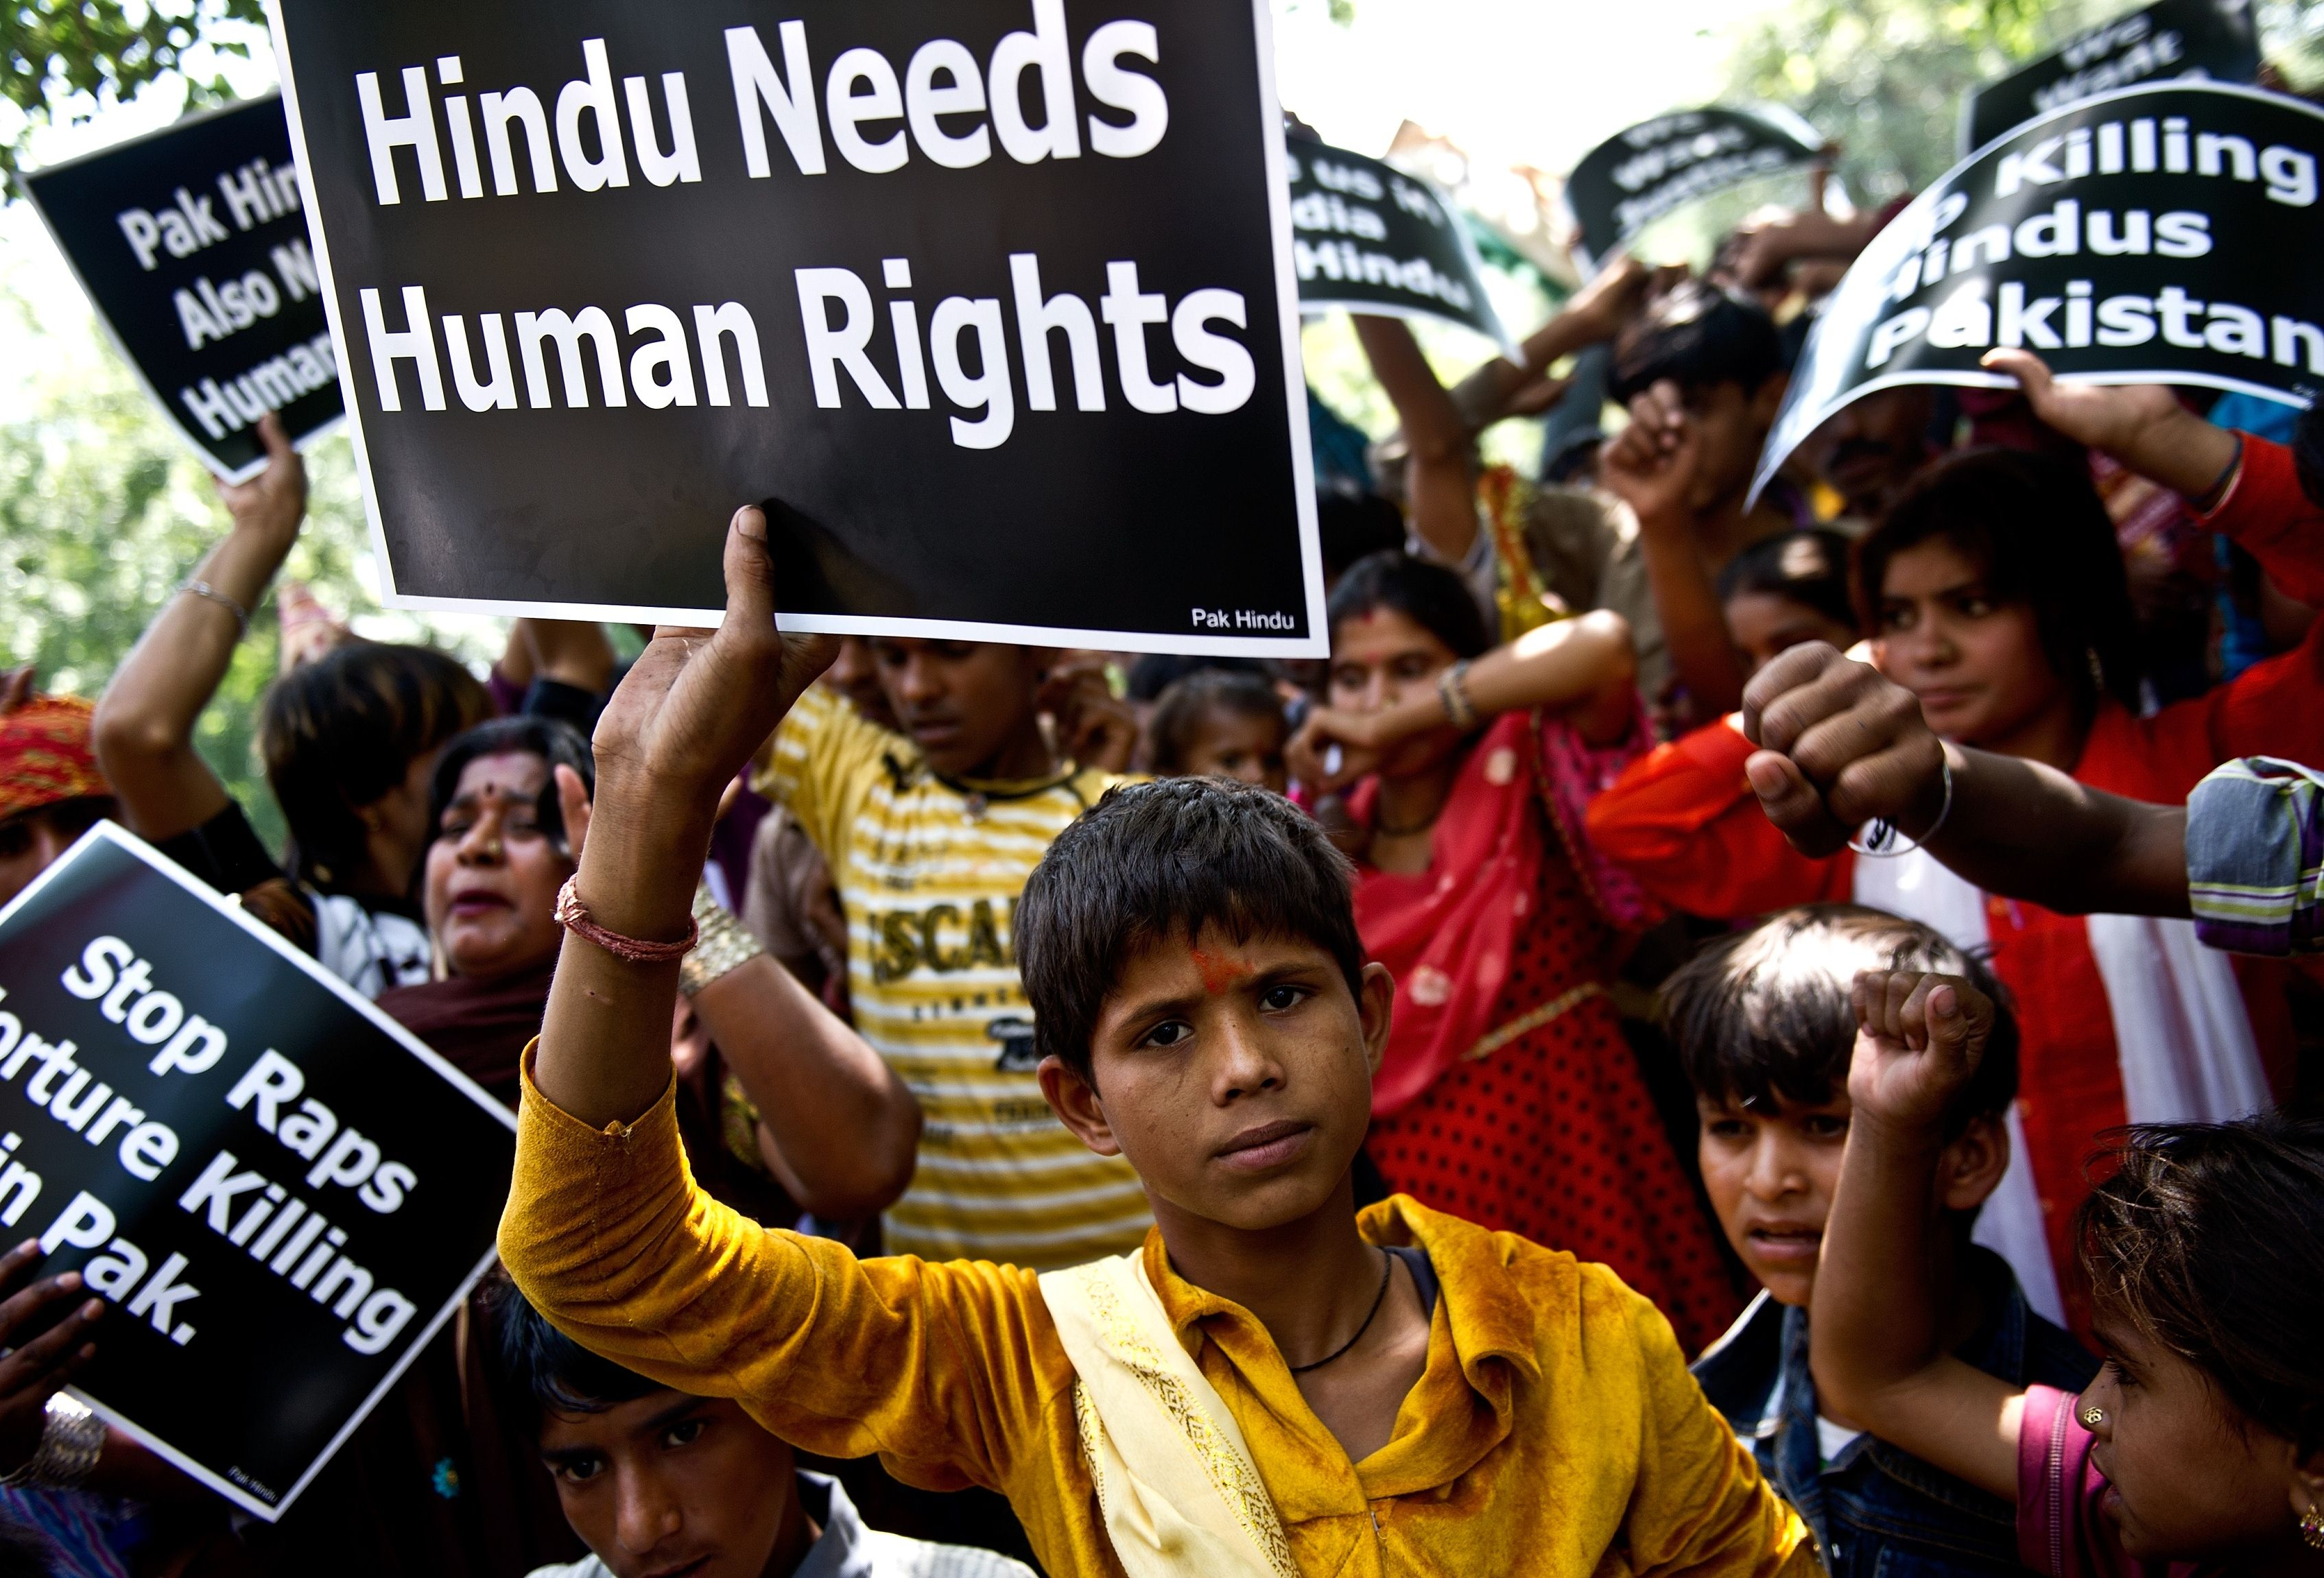 A minority Hindu refugee from Pakistan gestures with a placard during a protest outside the United Nations office in New Delhi.